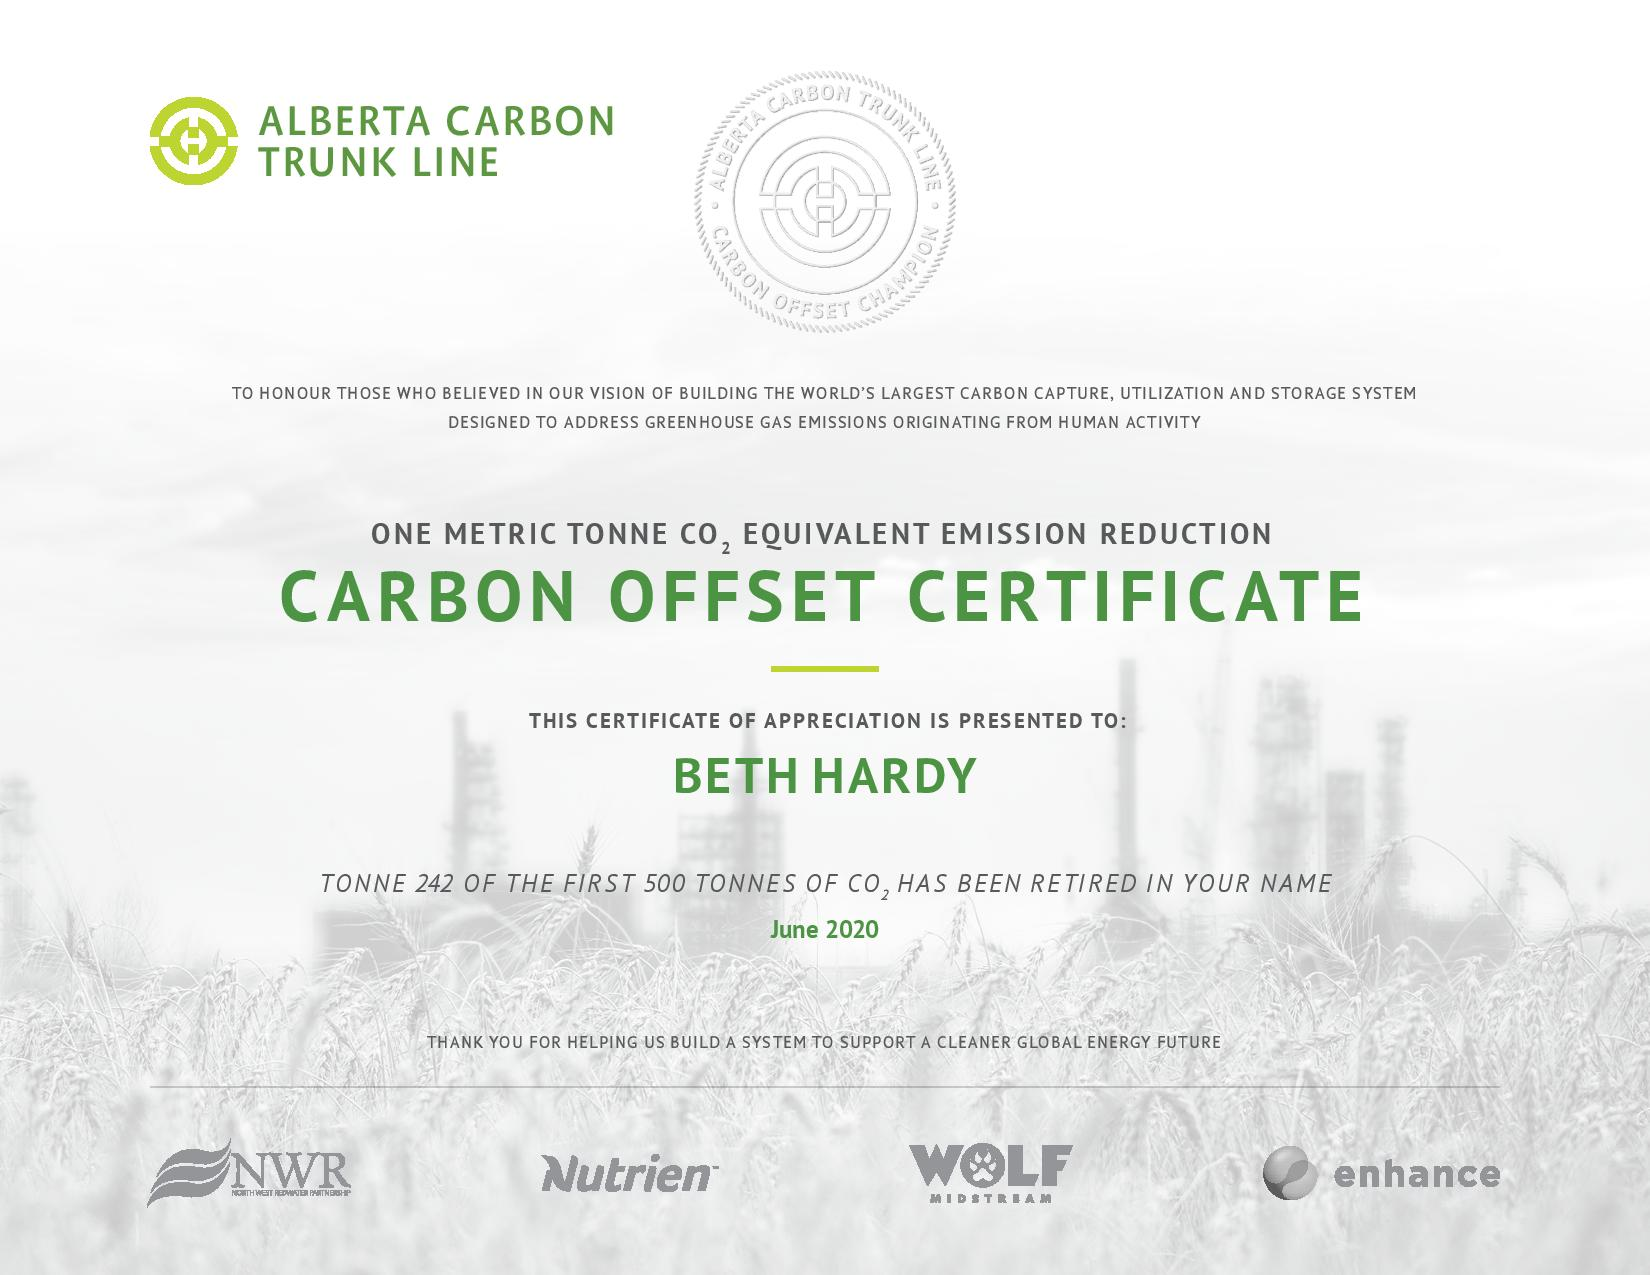 ACTL chose to retire an offset credit generated from the very first 500 tonnes of CO₂ injected from the ACTL system in the name of supporters.